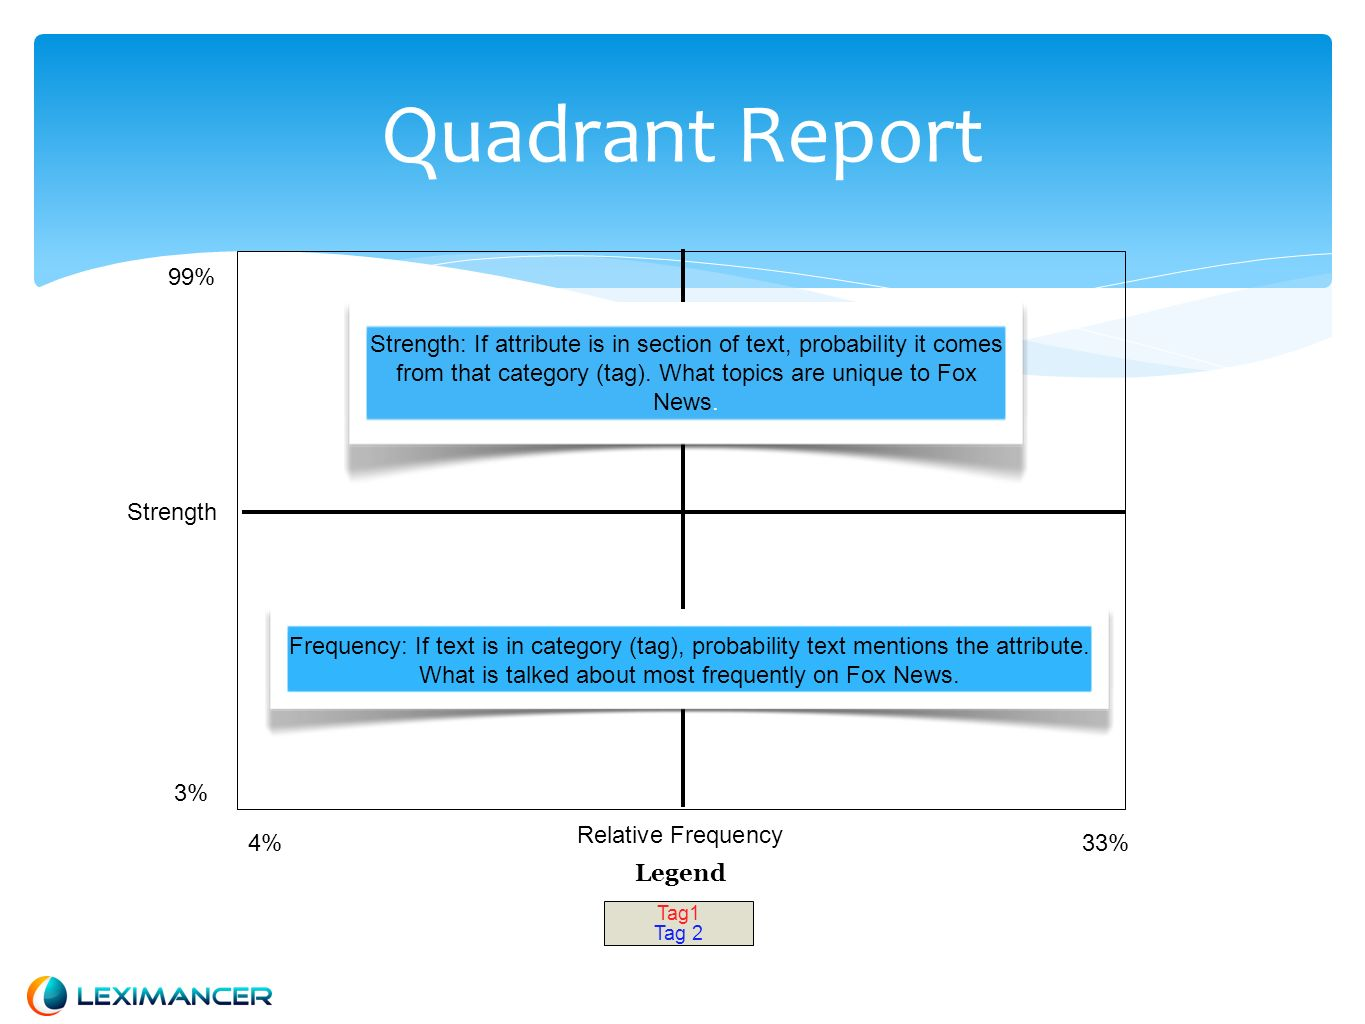 Quadrant Report Relative Frequency 99% 3% 33%4% Strength Tag1 Tag 2 Legend Frequency: If text is in category (tag), probability text mentions the attr